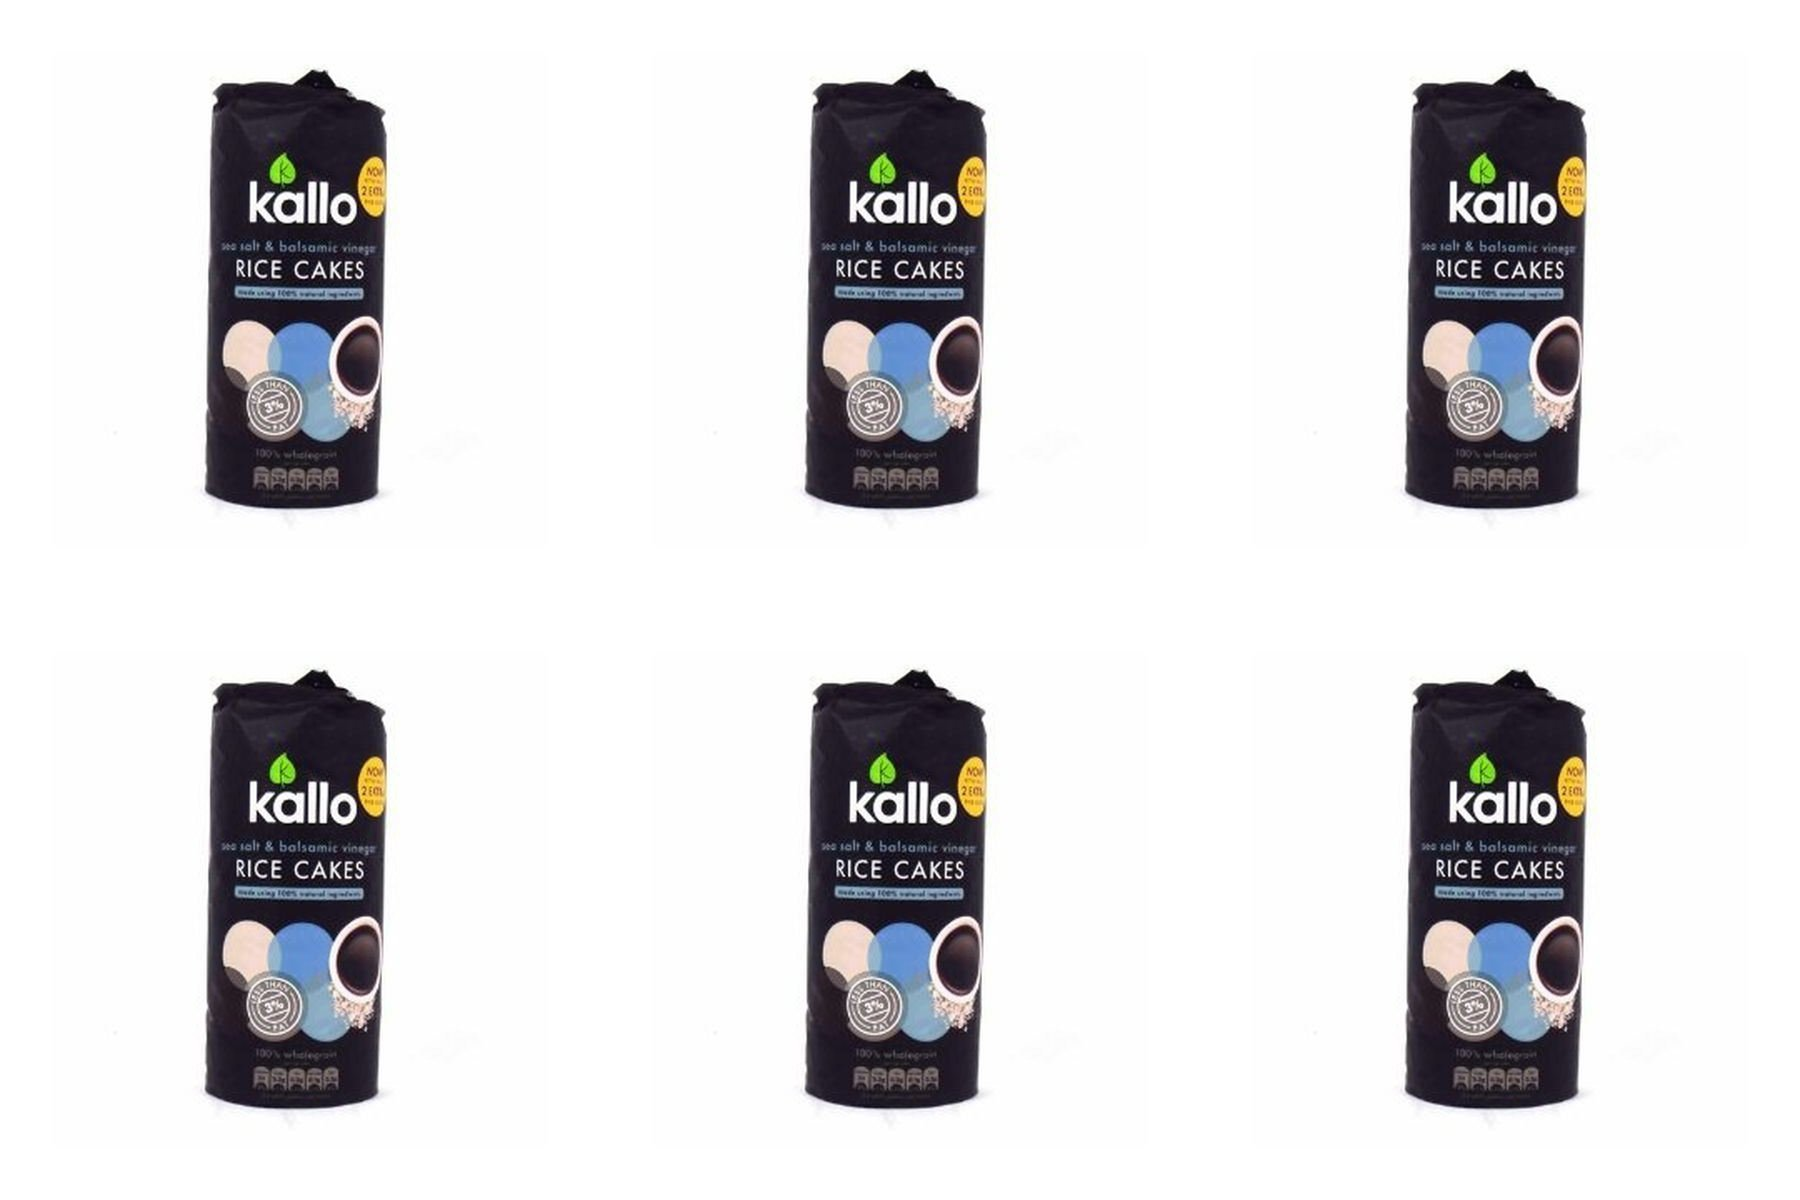 (6 PACK) - Kallo Jumbo Rice Cakes - Sea Salt & Balsamic Vinegar | 107g | 6 PACK - SUPER SAVER - SAVE MONEY